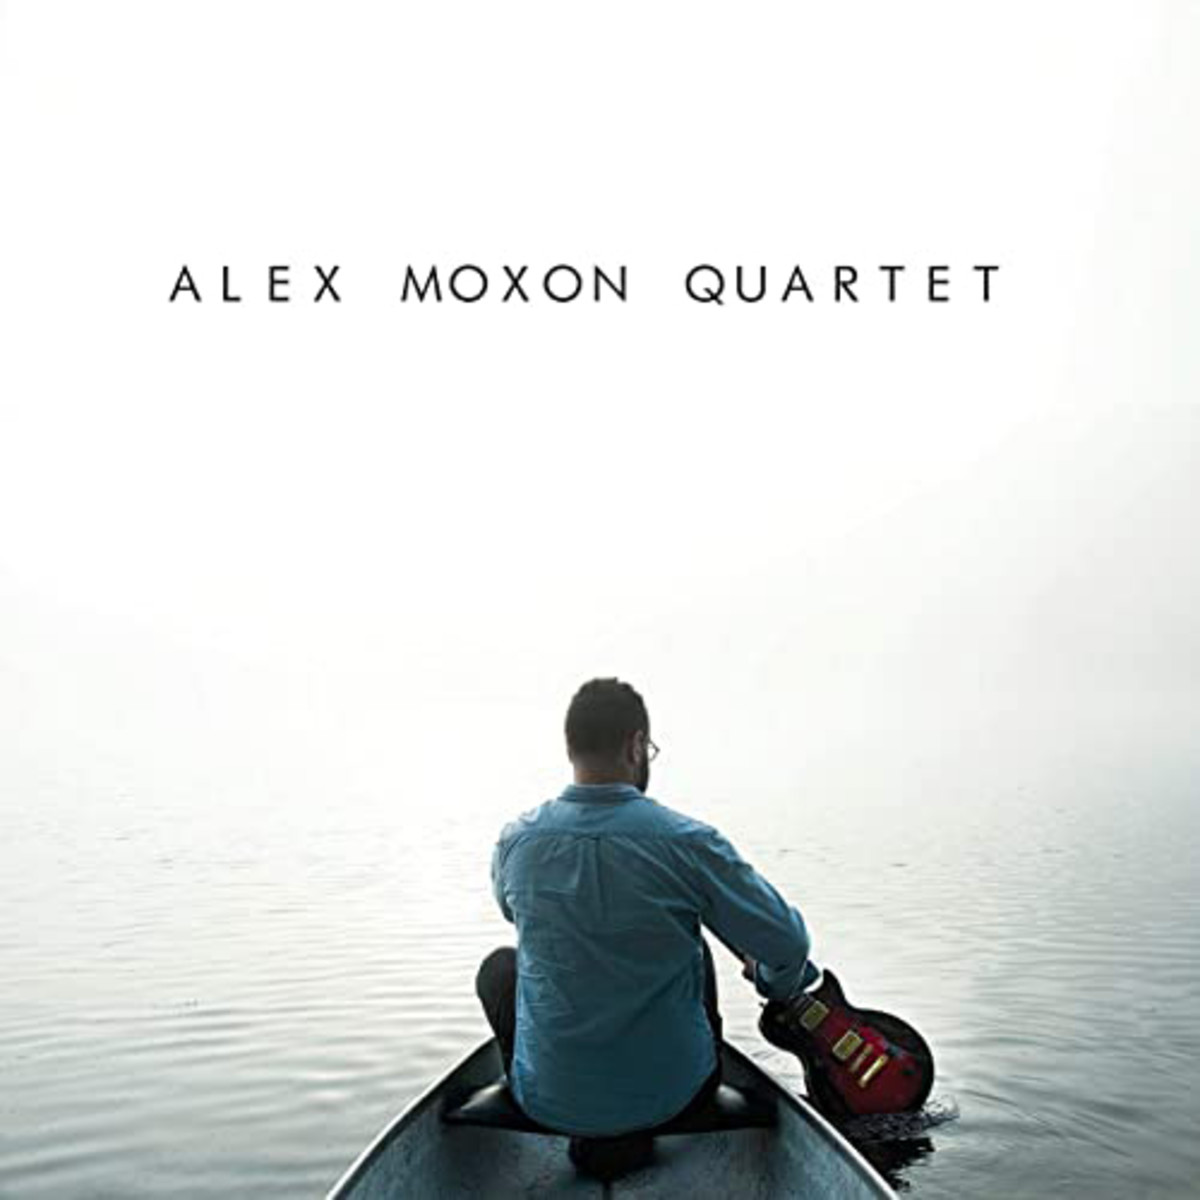 Alex Moxon Quartet